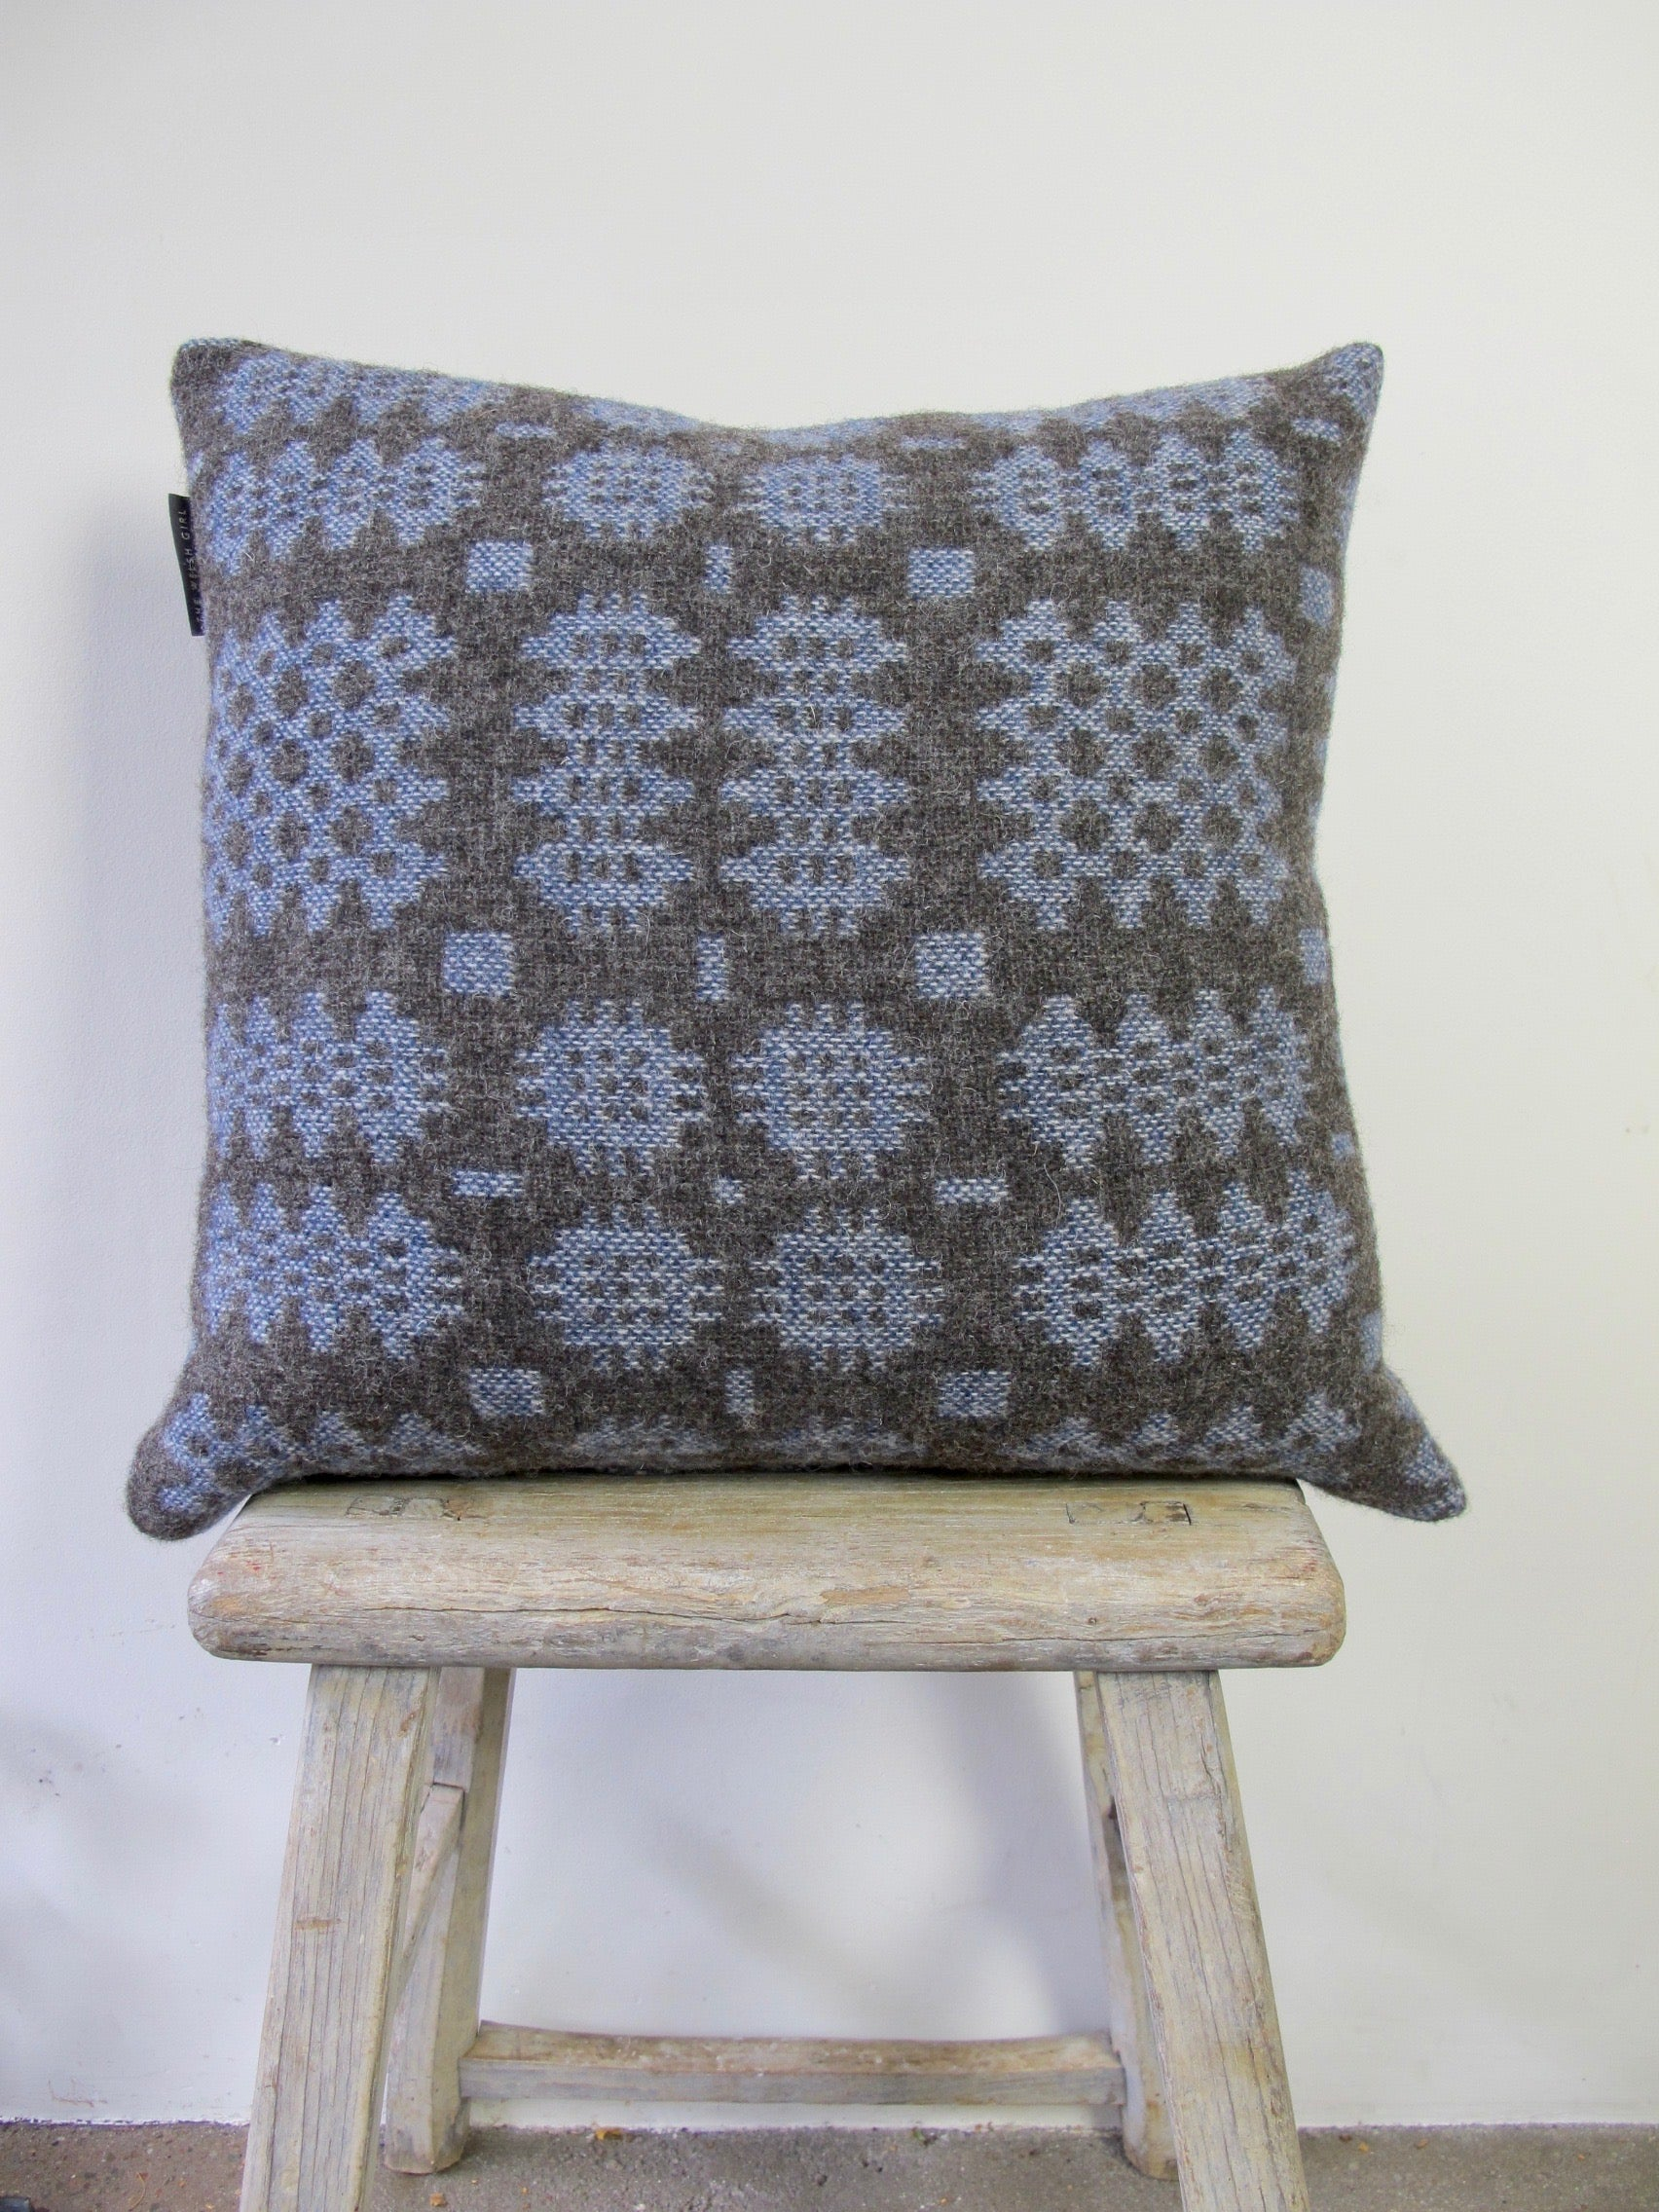 Lottie Blue Tapestry Cushion - 18""